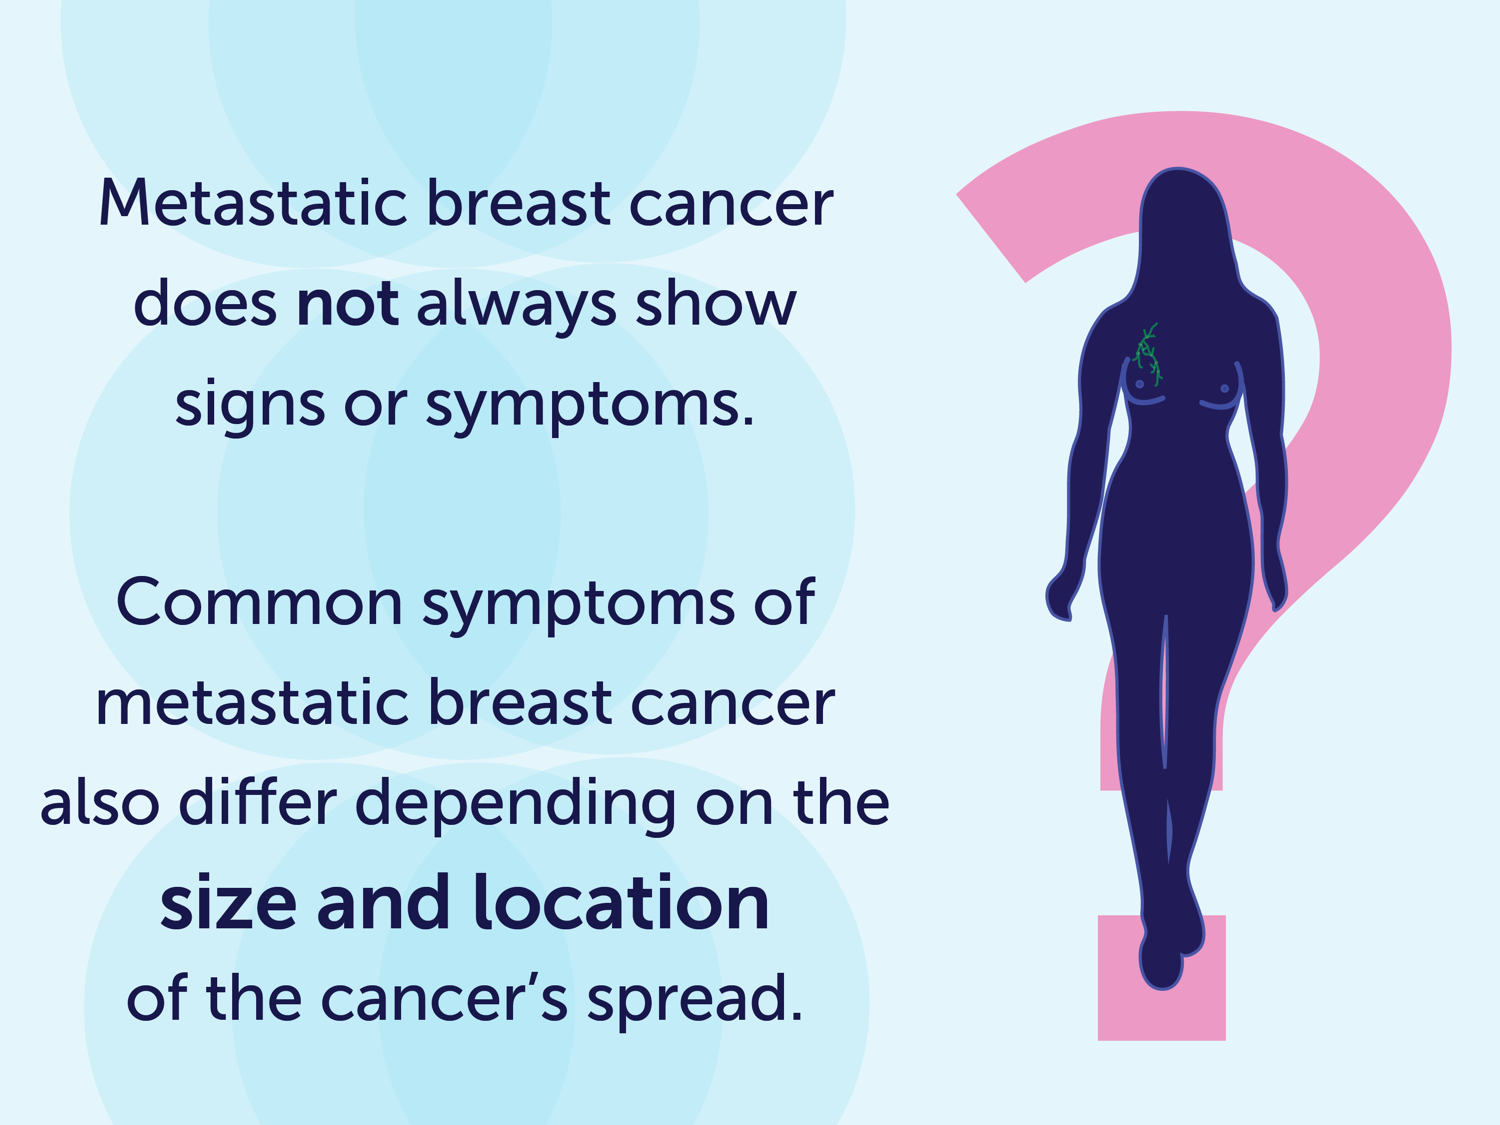 What Are The Symptoms Of Metastatic Breast Cancer?. University Of Florida Student Population. How Long Does Nursing School Take. Is There Less Alcohol In Light Beer. Website Content Management Services. Small Business Loan For Bad Credit. Northeast Rehab Hospital Female Cialis Review. Law Enforcement Training Scenarios. Outdoor Banner Template Debt Relief San Diego